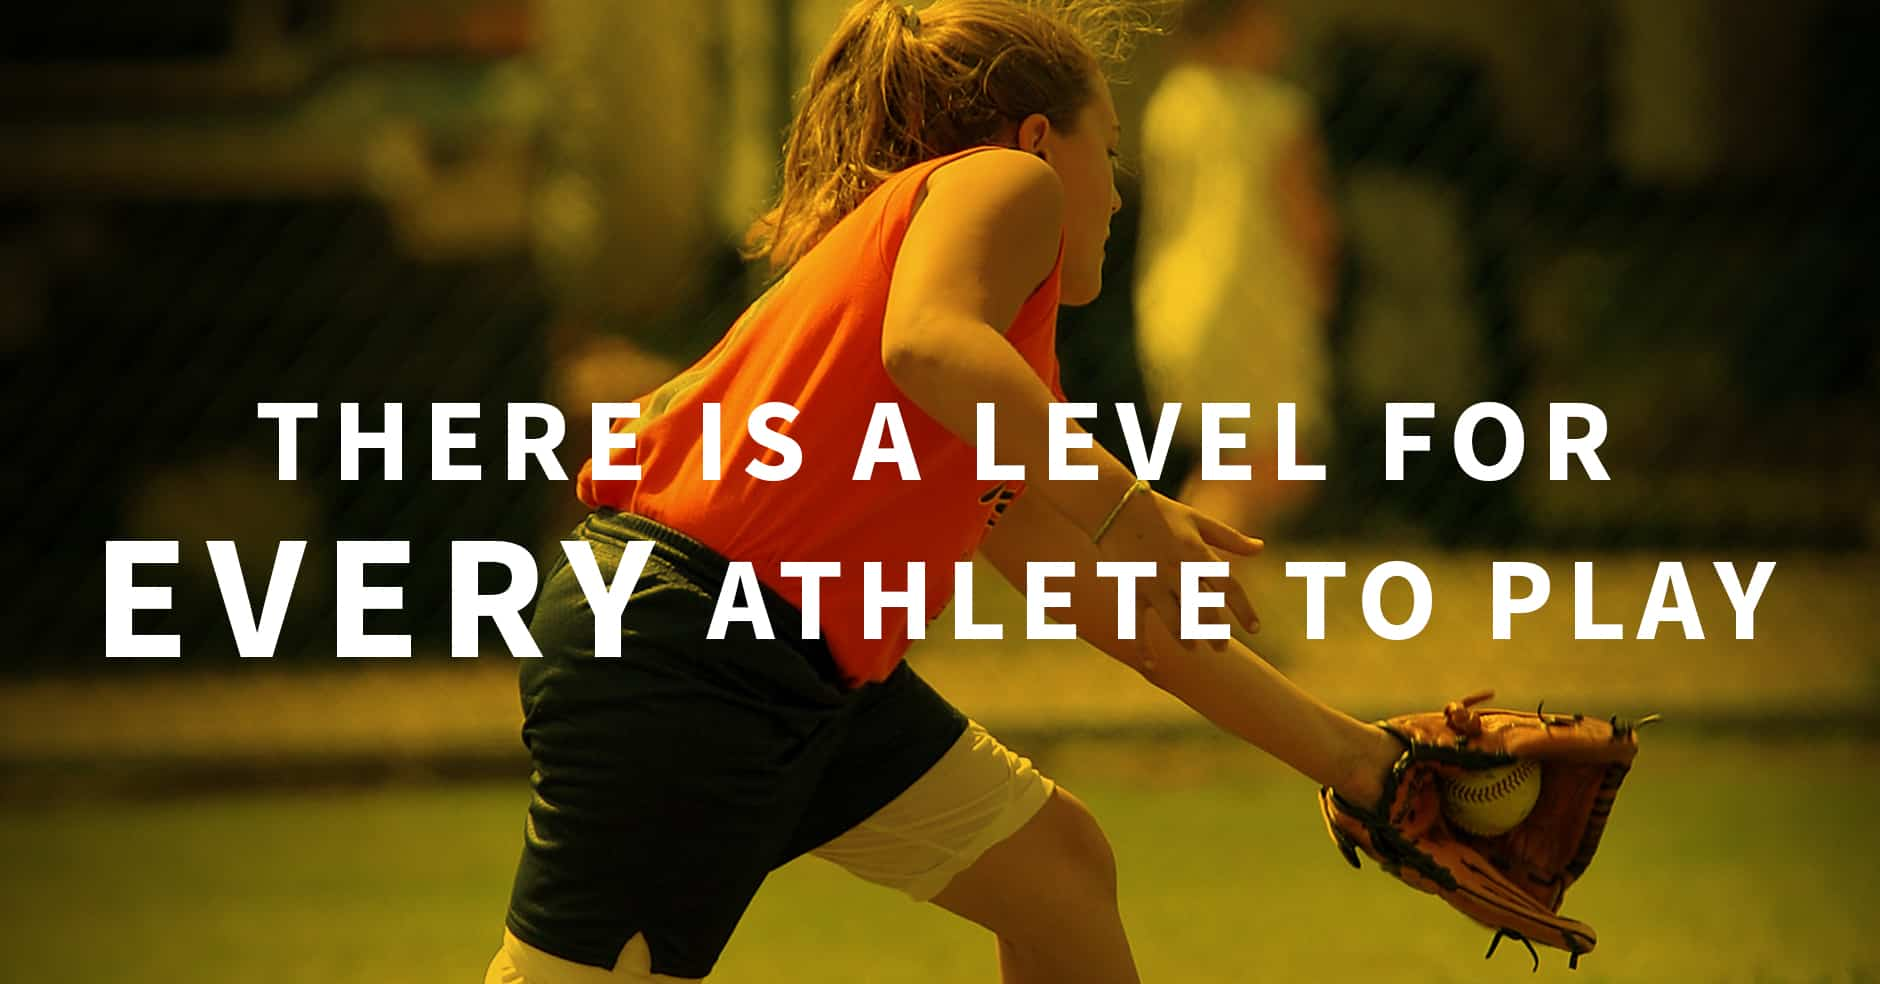 There Is A Level For Every Athlete To Play